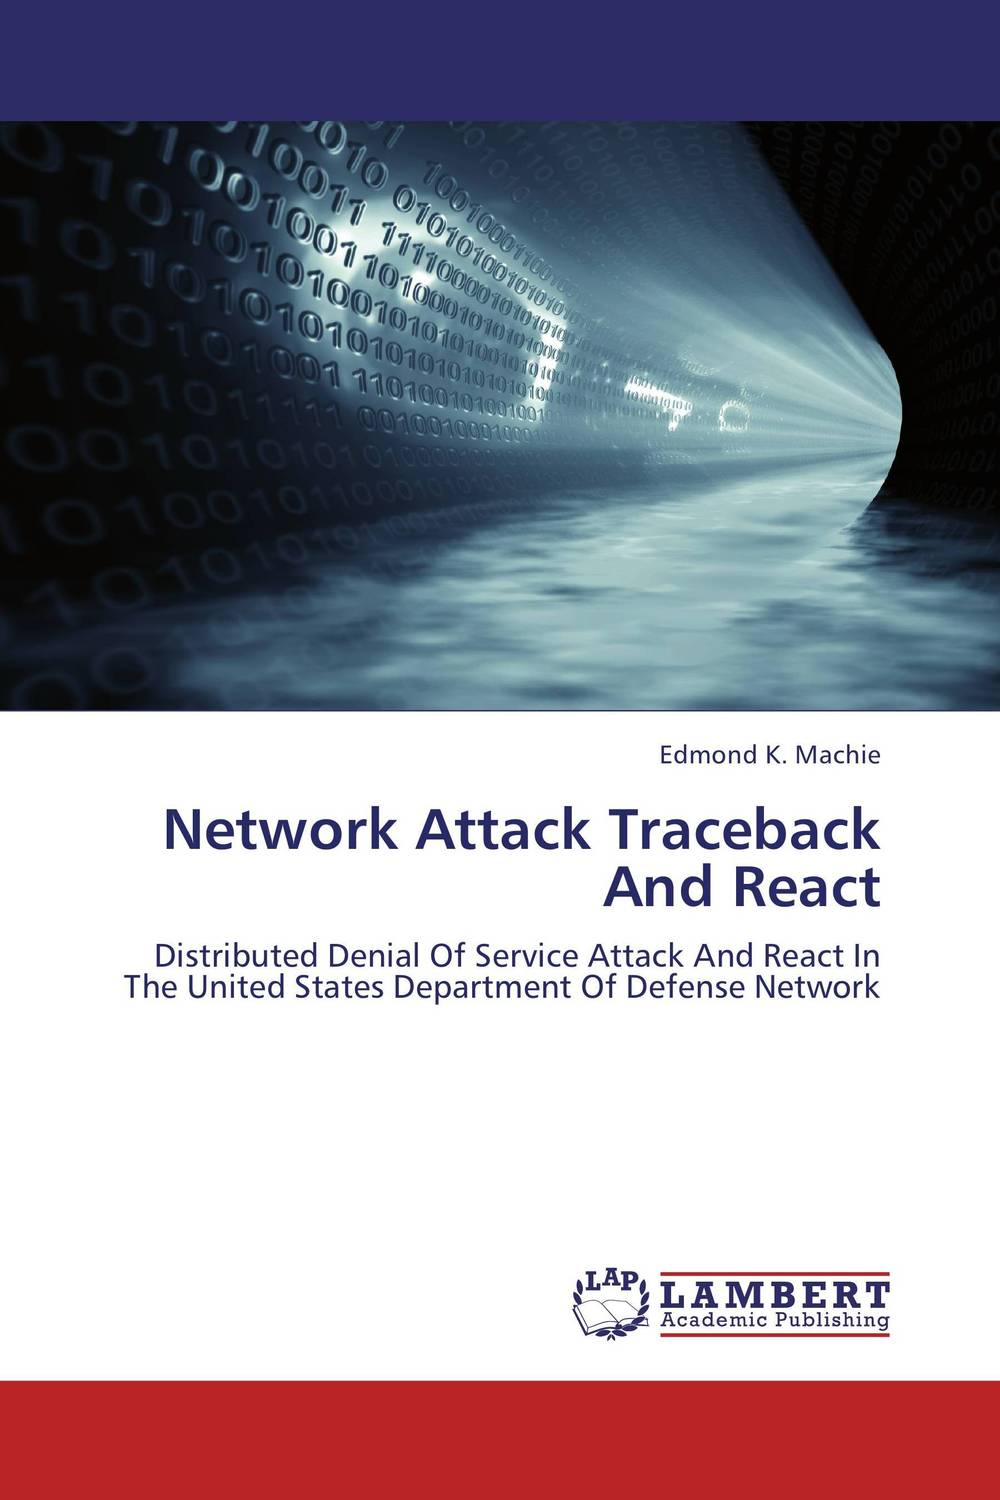 Network Attack Traceback And React